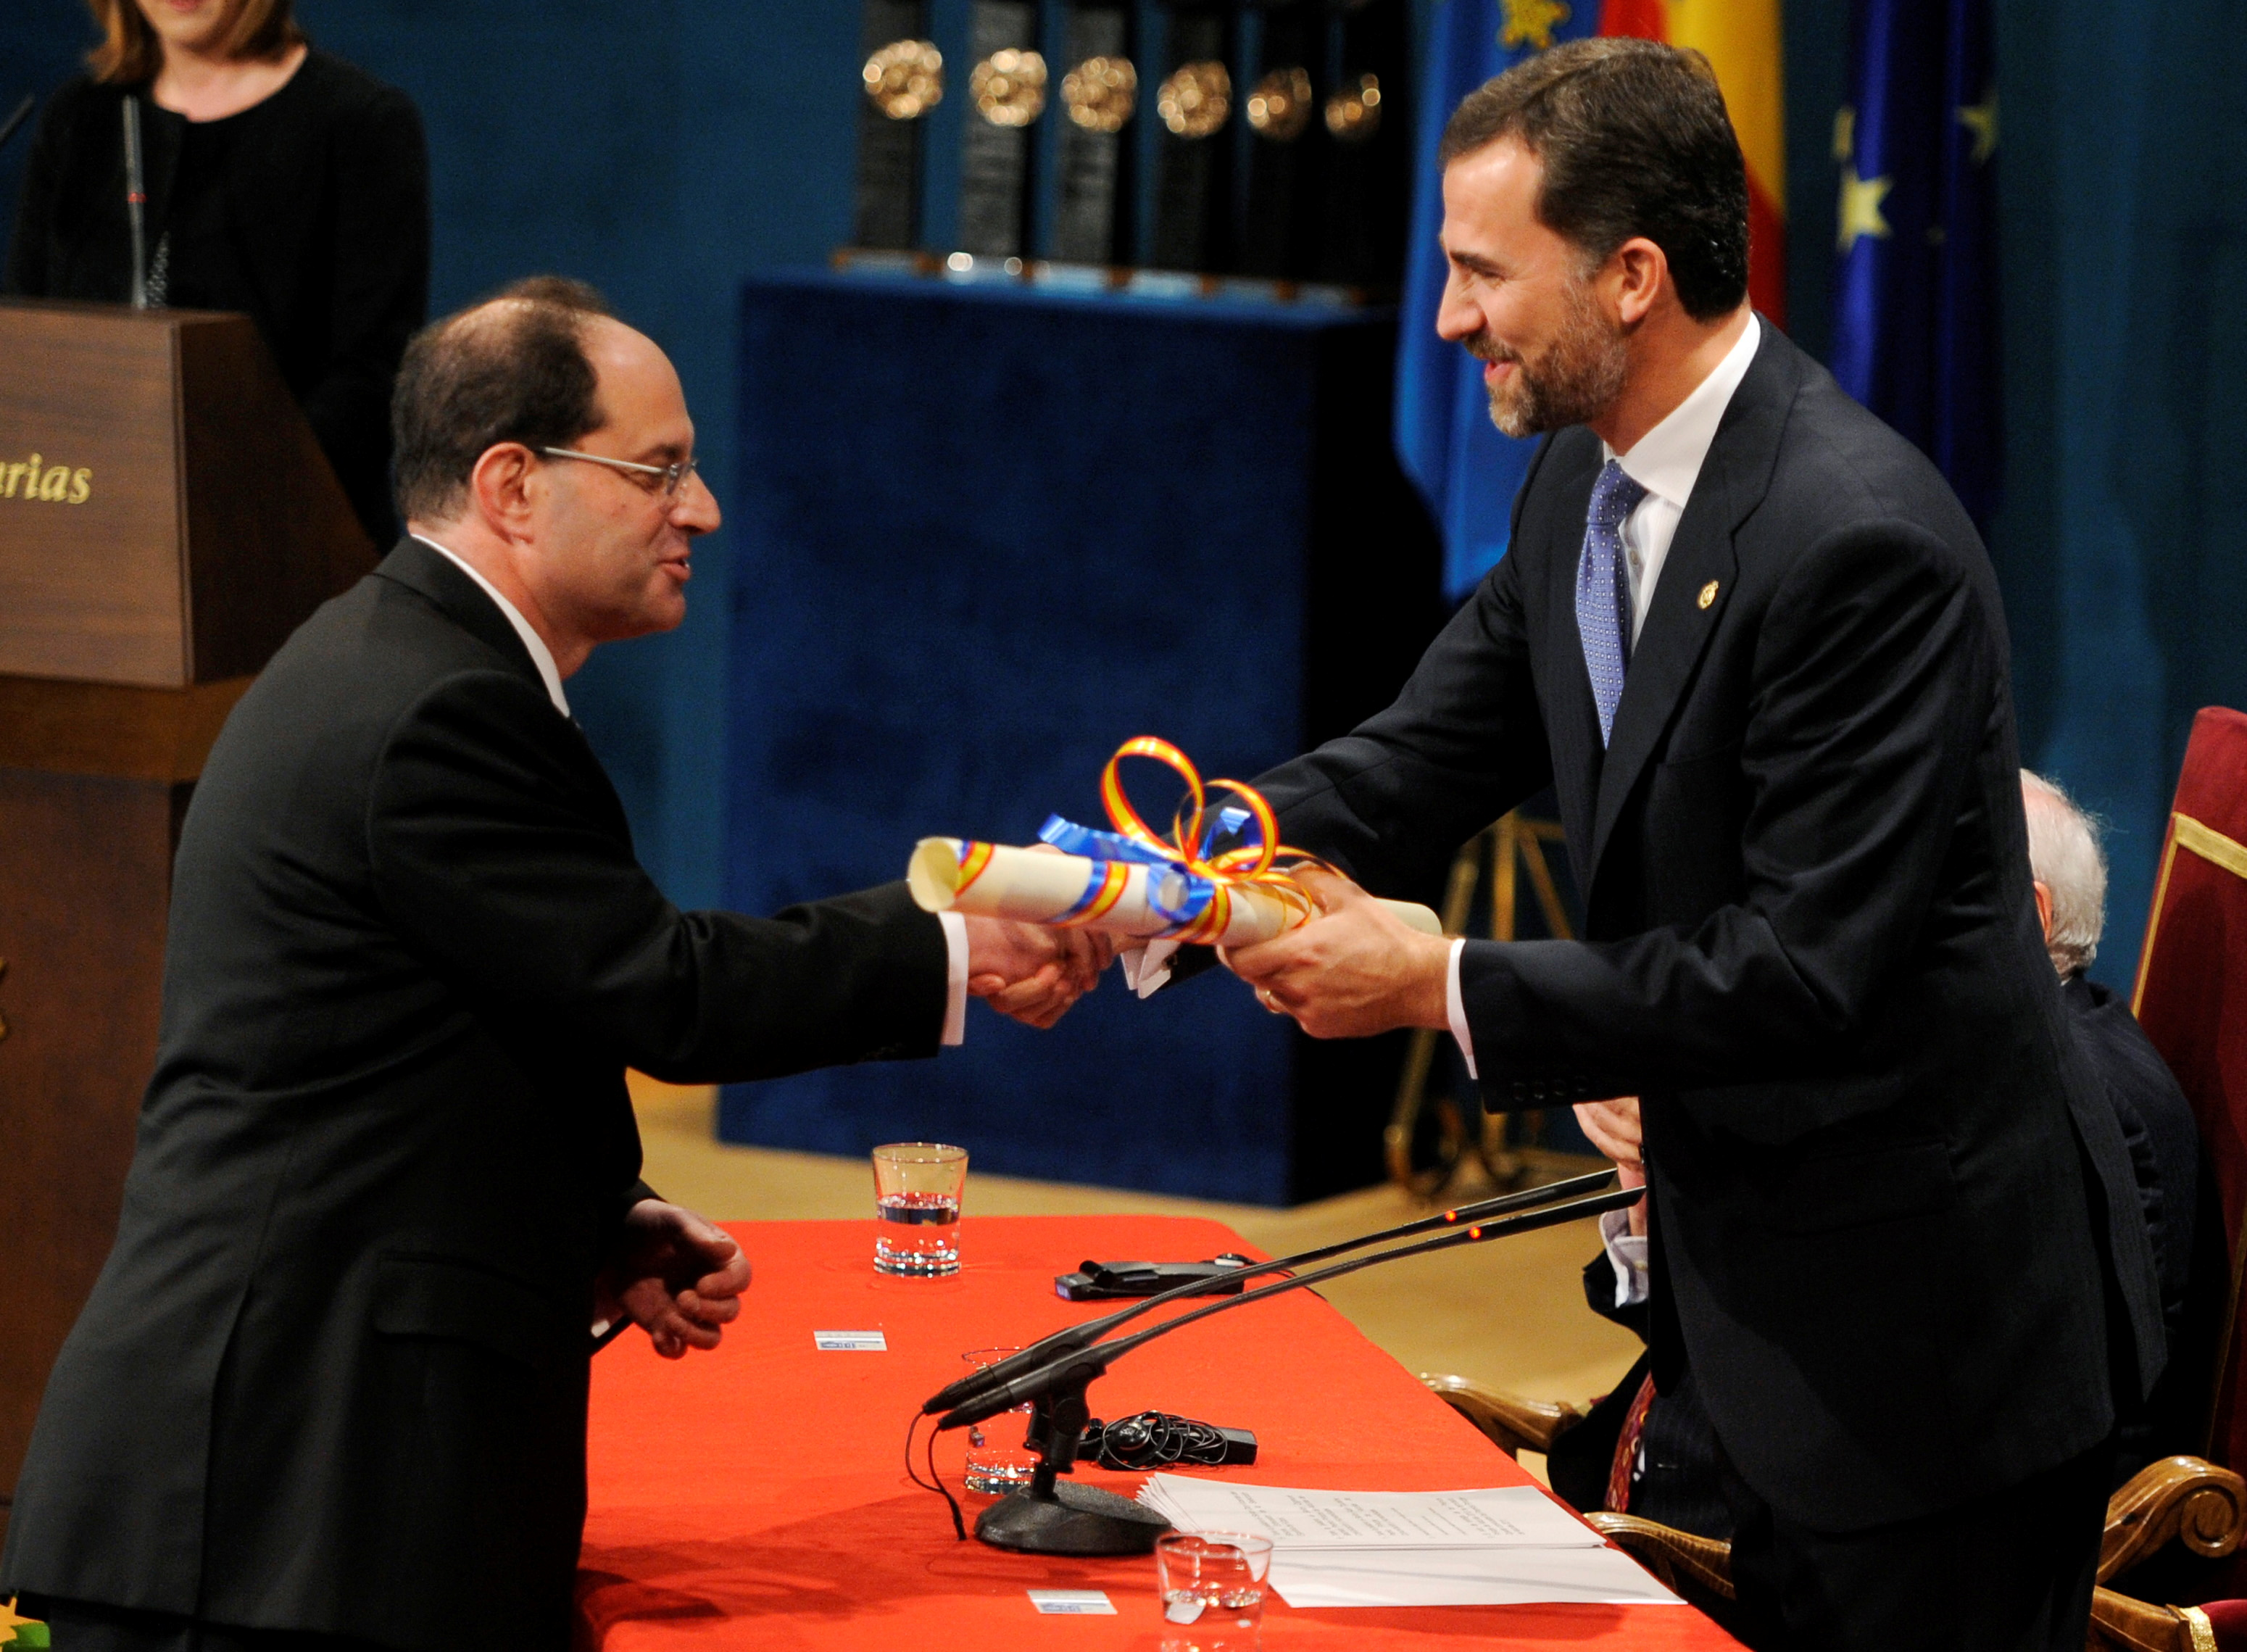 U.S. biochemist David Julius (L) receives the 2010 Prince of Asturias Award for Technical and Scientific Research from Spain's Crown Prince Felipe during a ceremony at Campoamor theatre in Oviedo, northern Spain, October 22, 2010. REUTERS/Felix Ordonez